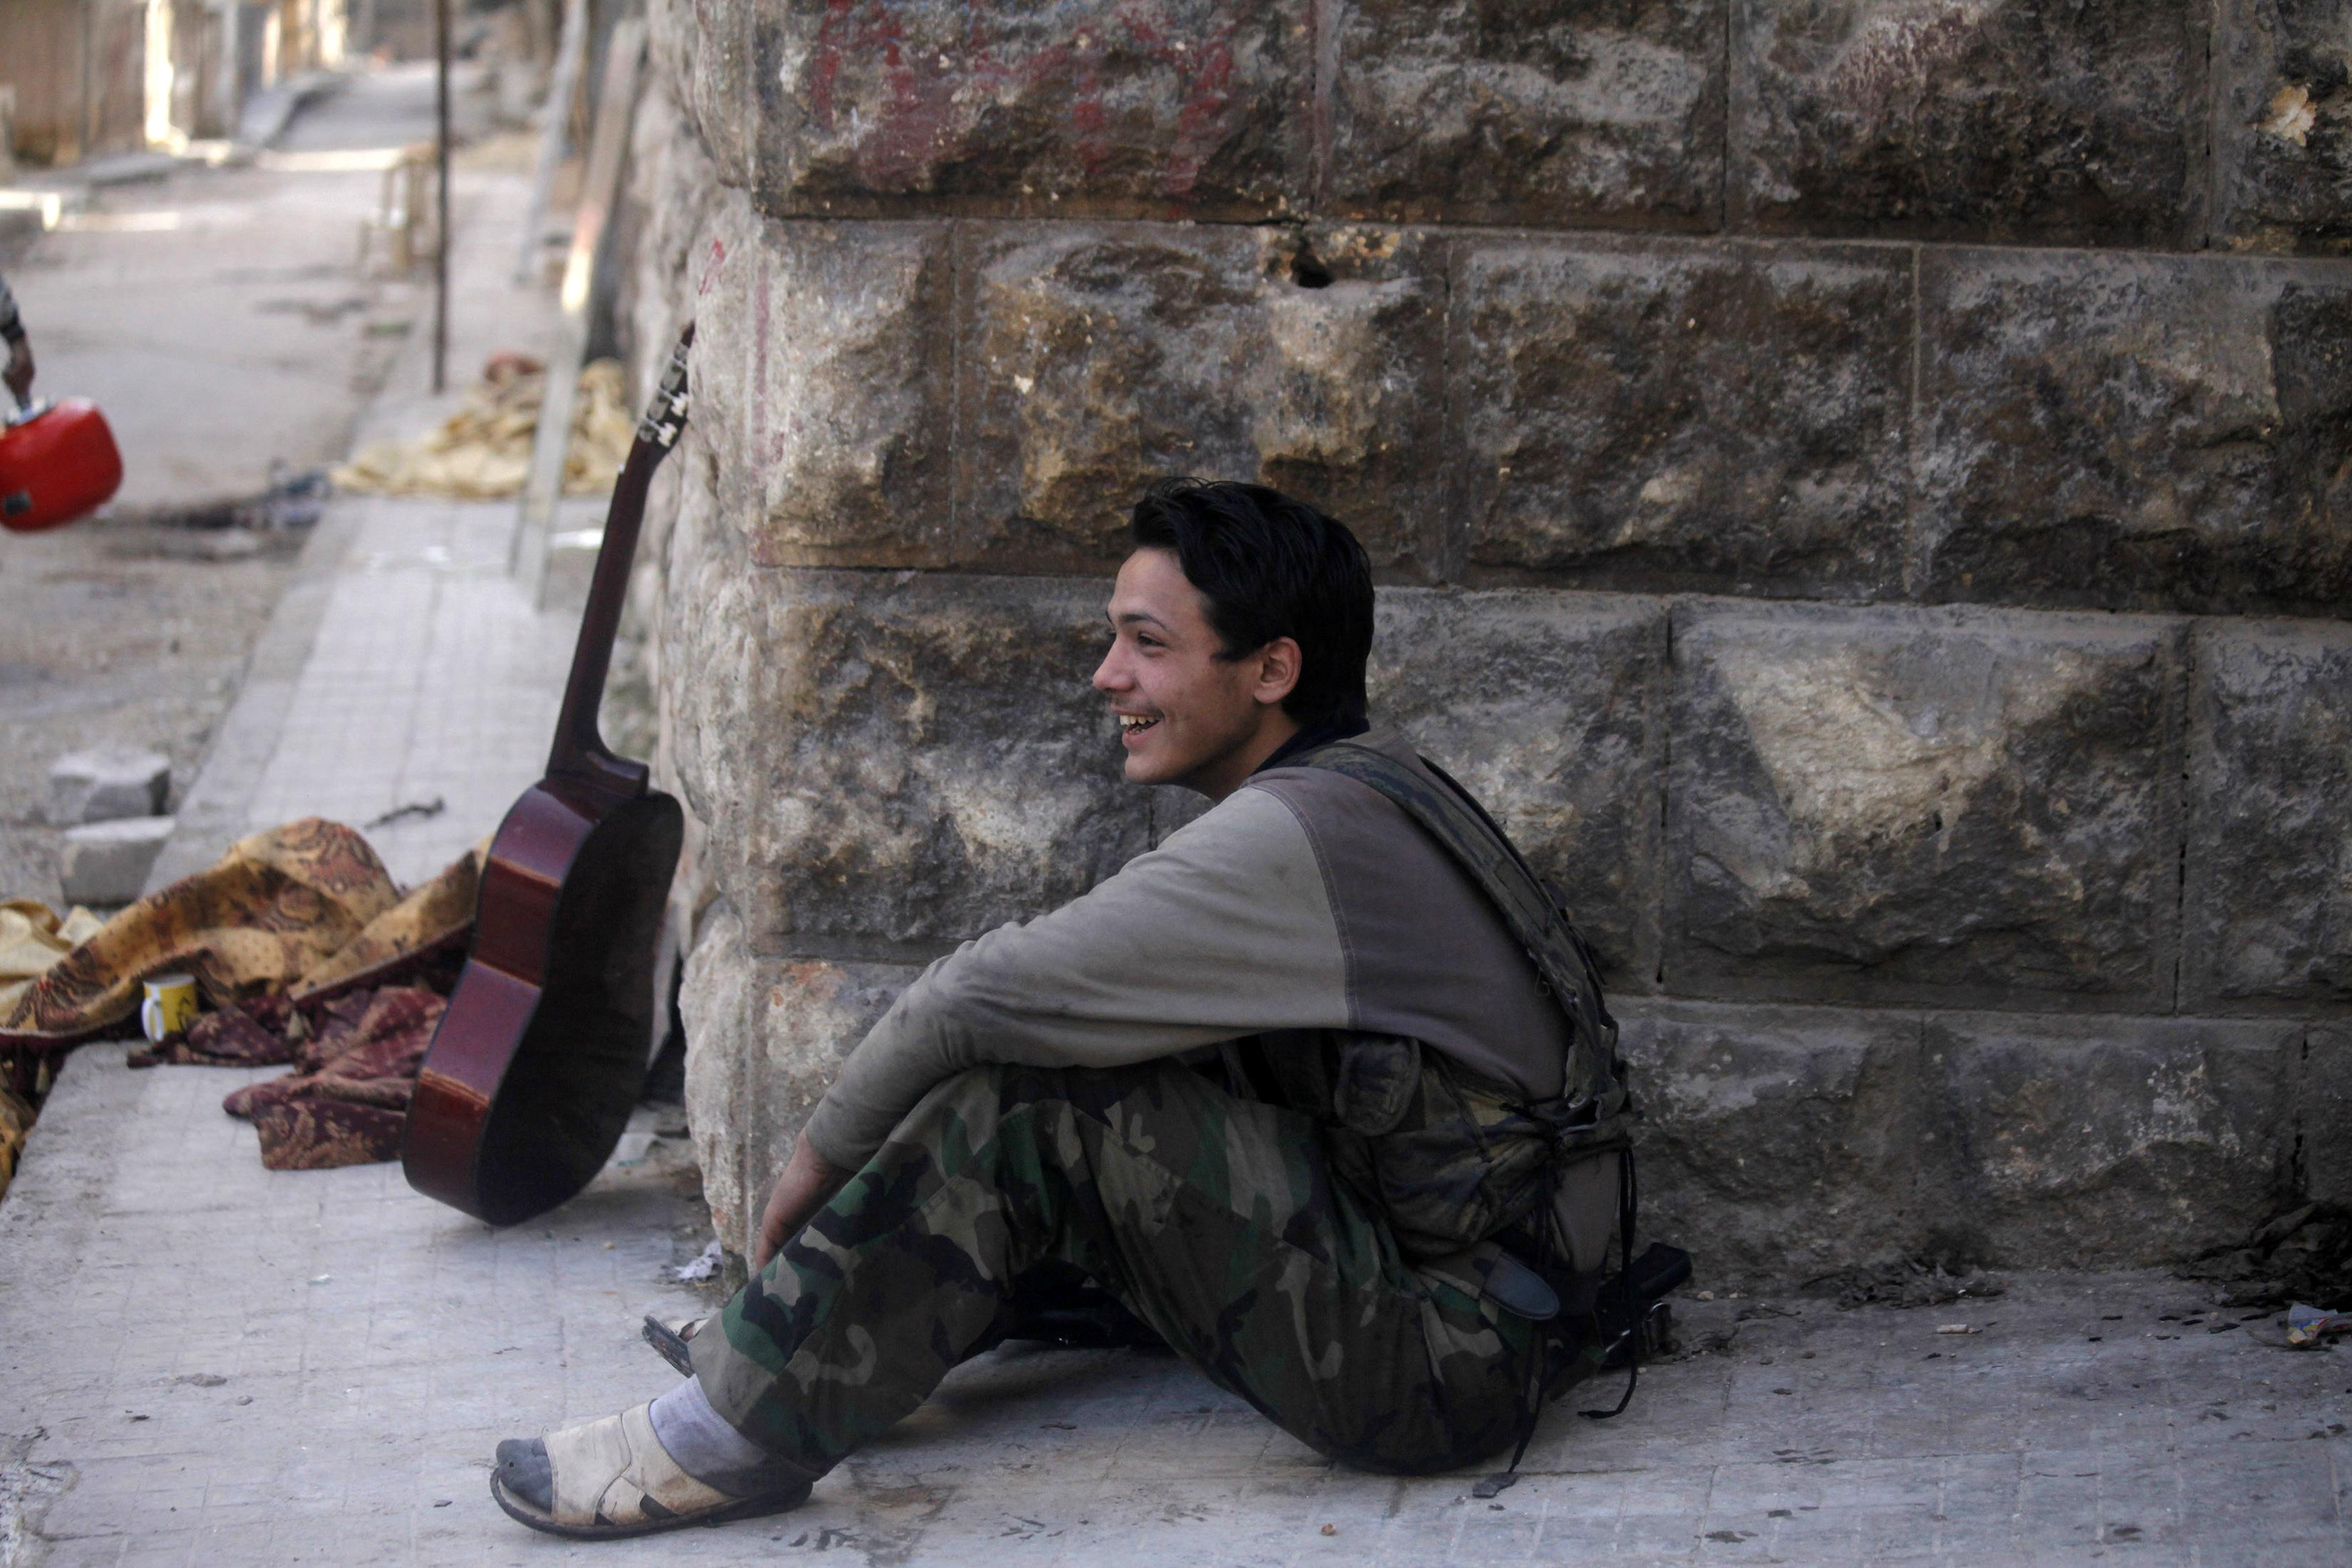 A Free Syrian army fighter rests beside a guitar in Izaa district in Aleppo.?Photo by Reuters